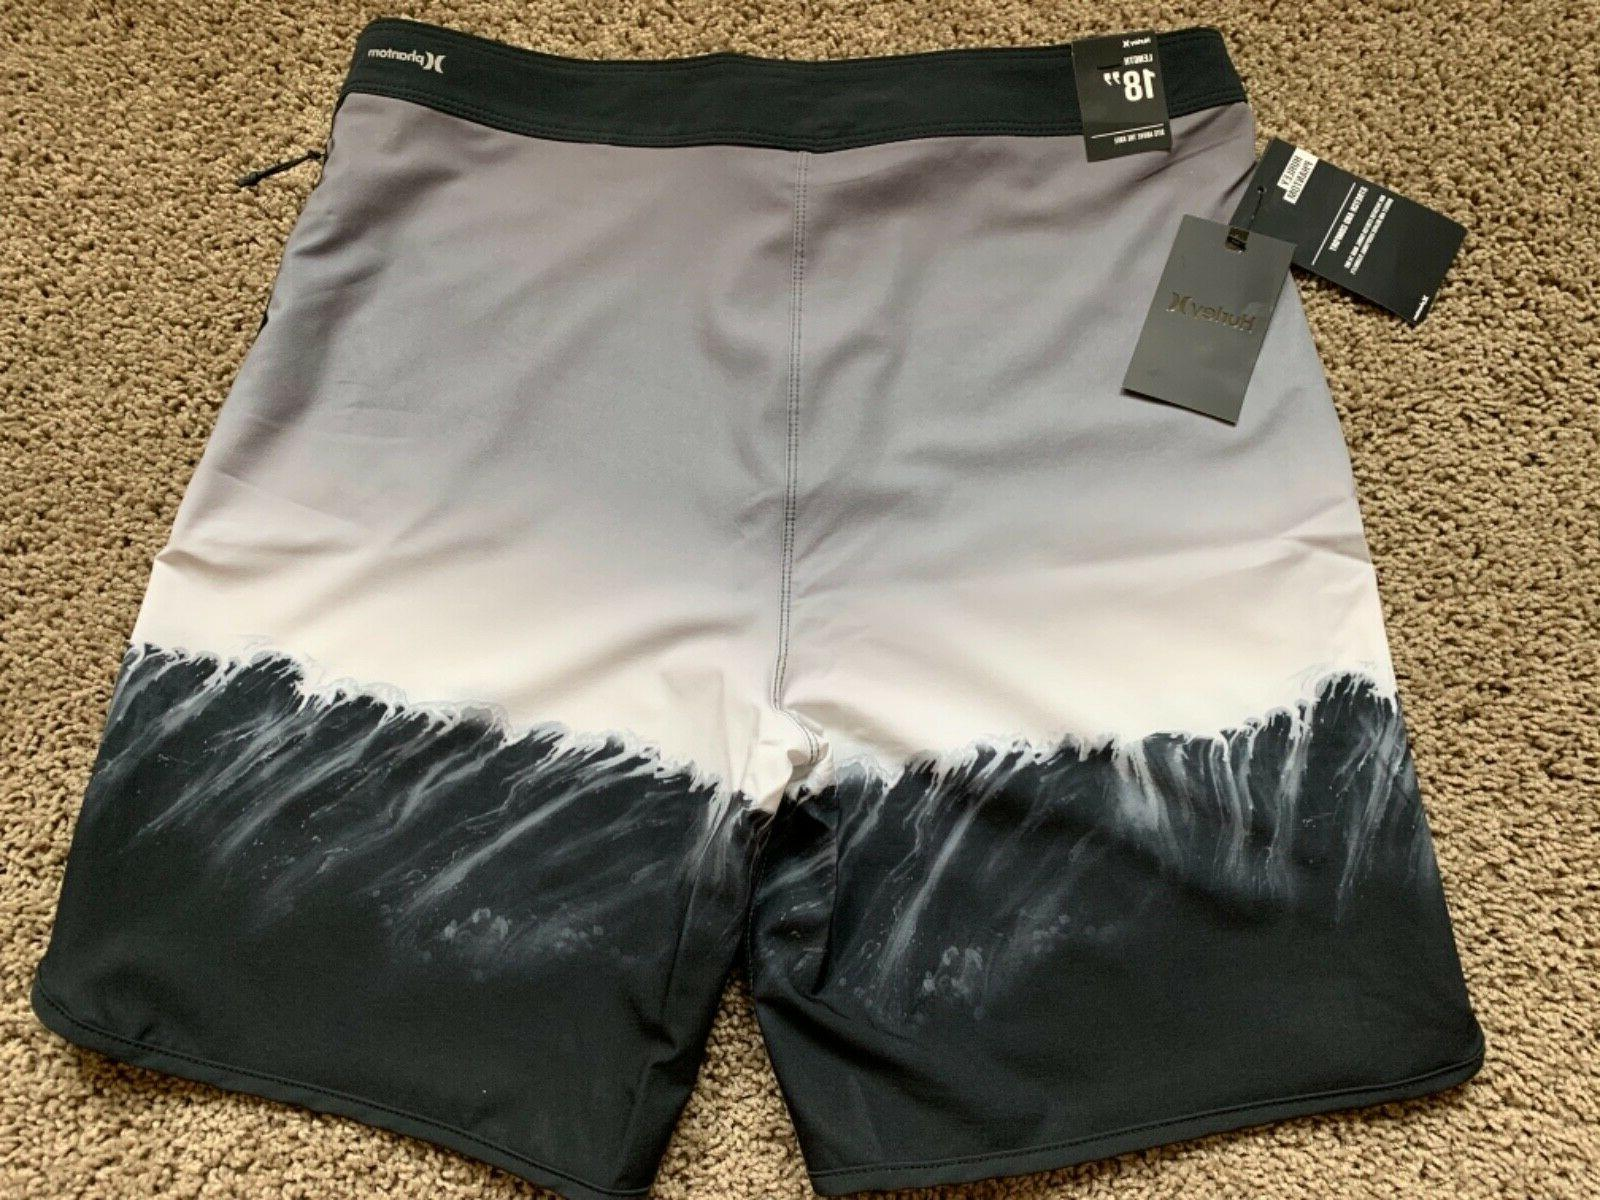 $65 - HURLEY PHANTOM MENS SHORTS 34 18